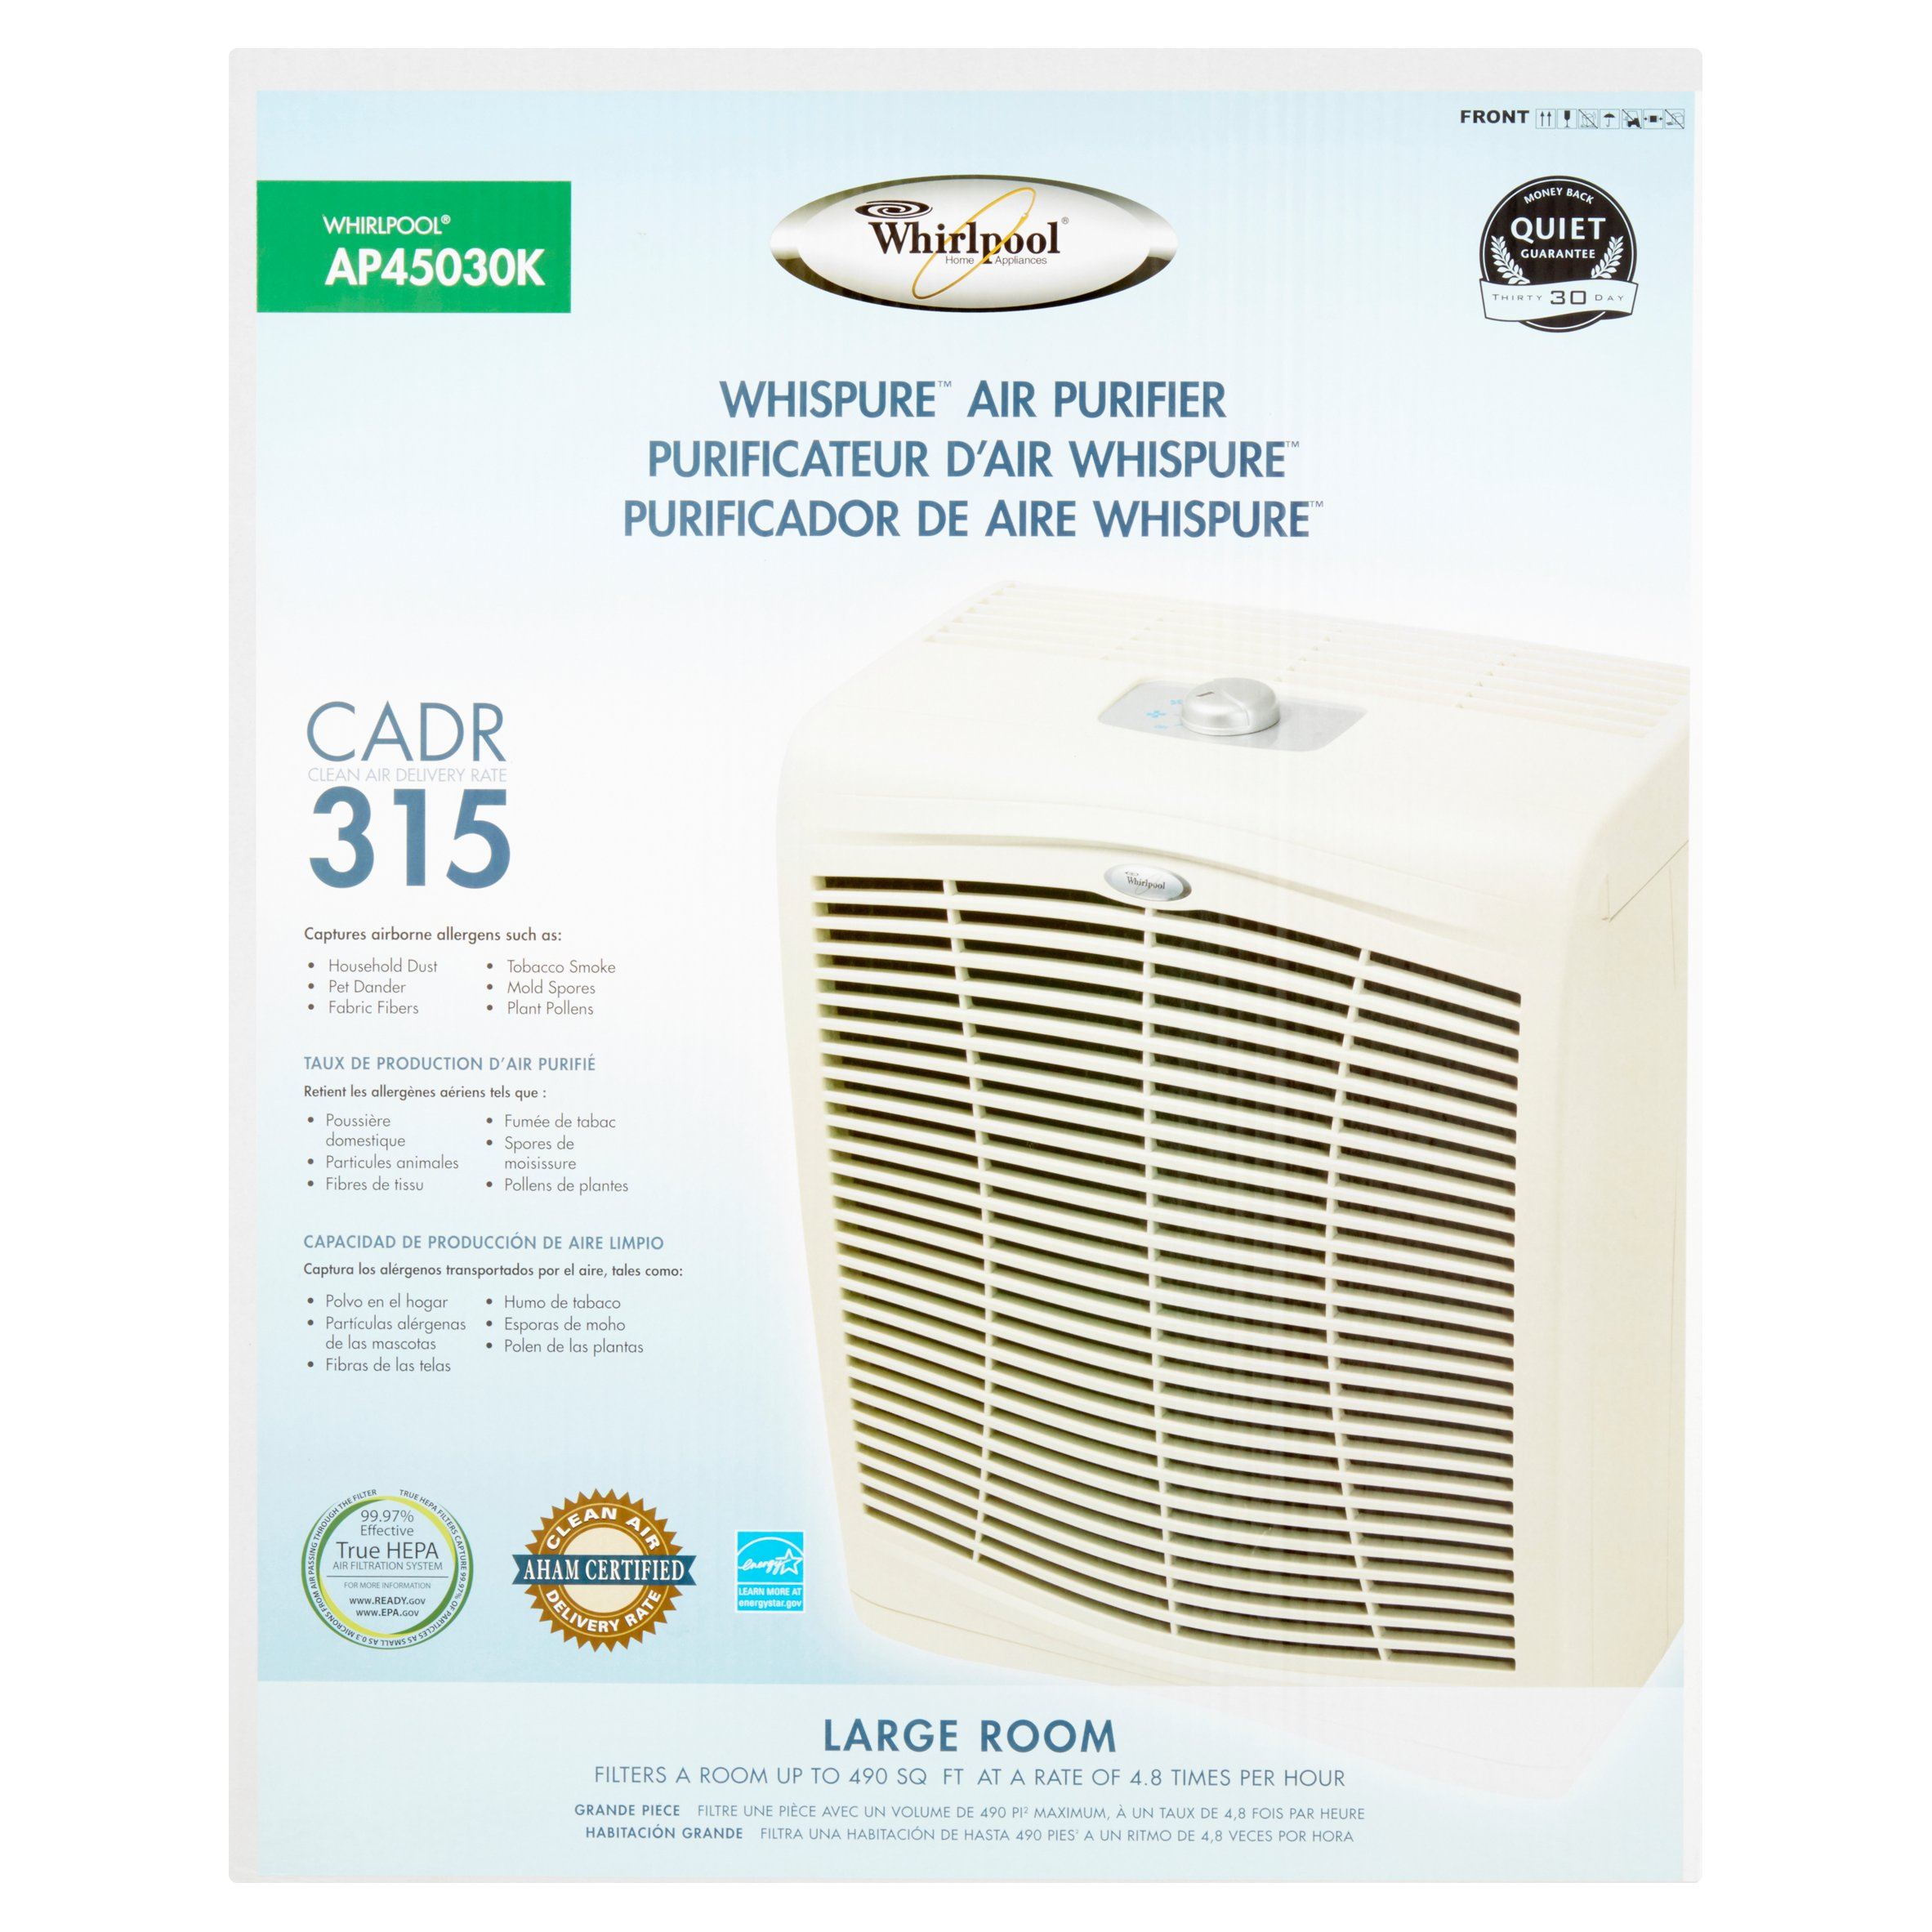 Whirlpool Whispure Large Room Air Purifier